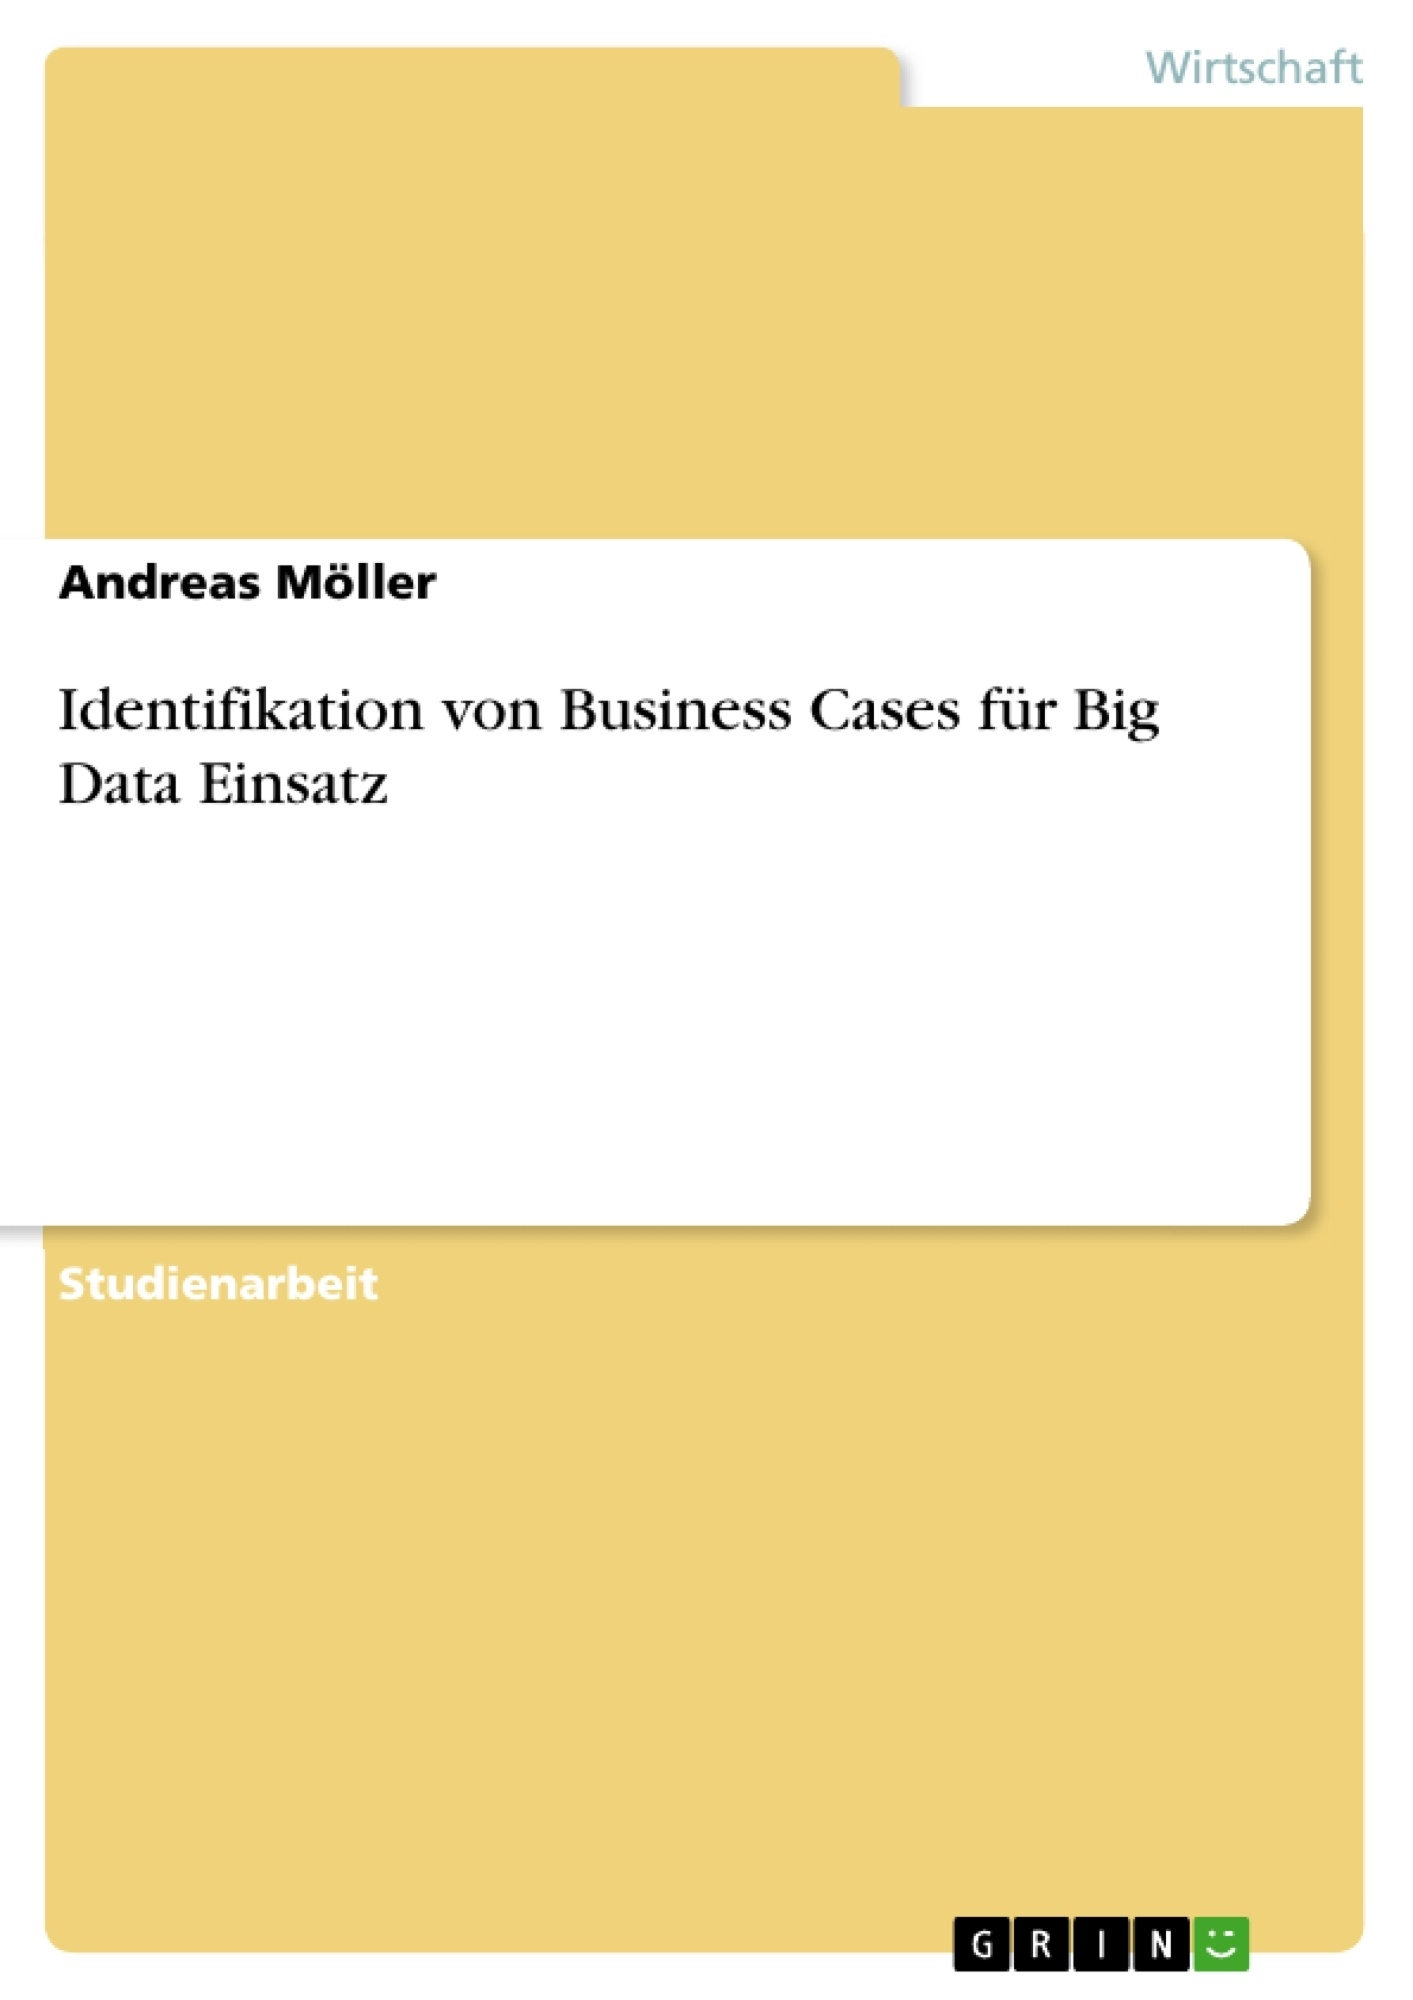 Titel: Identifikation von Business Cases für Big Data Einsatz